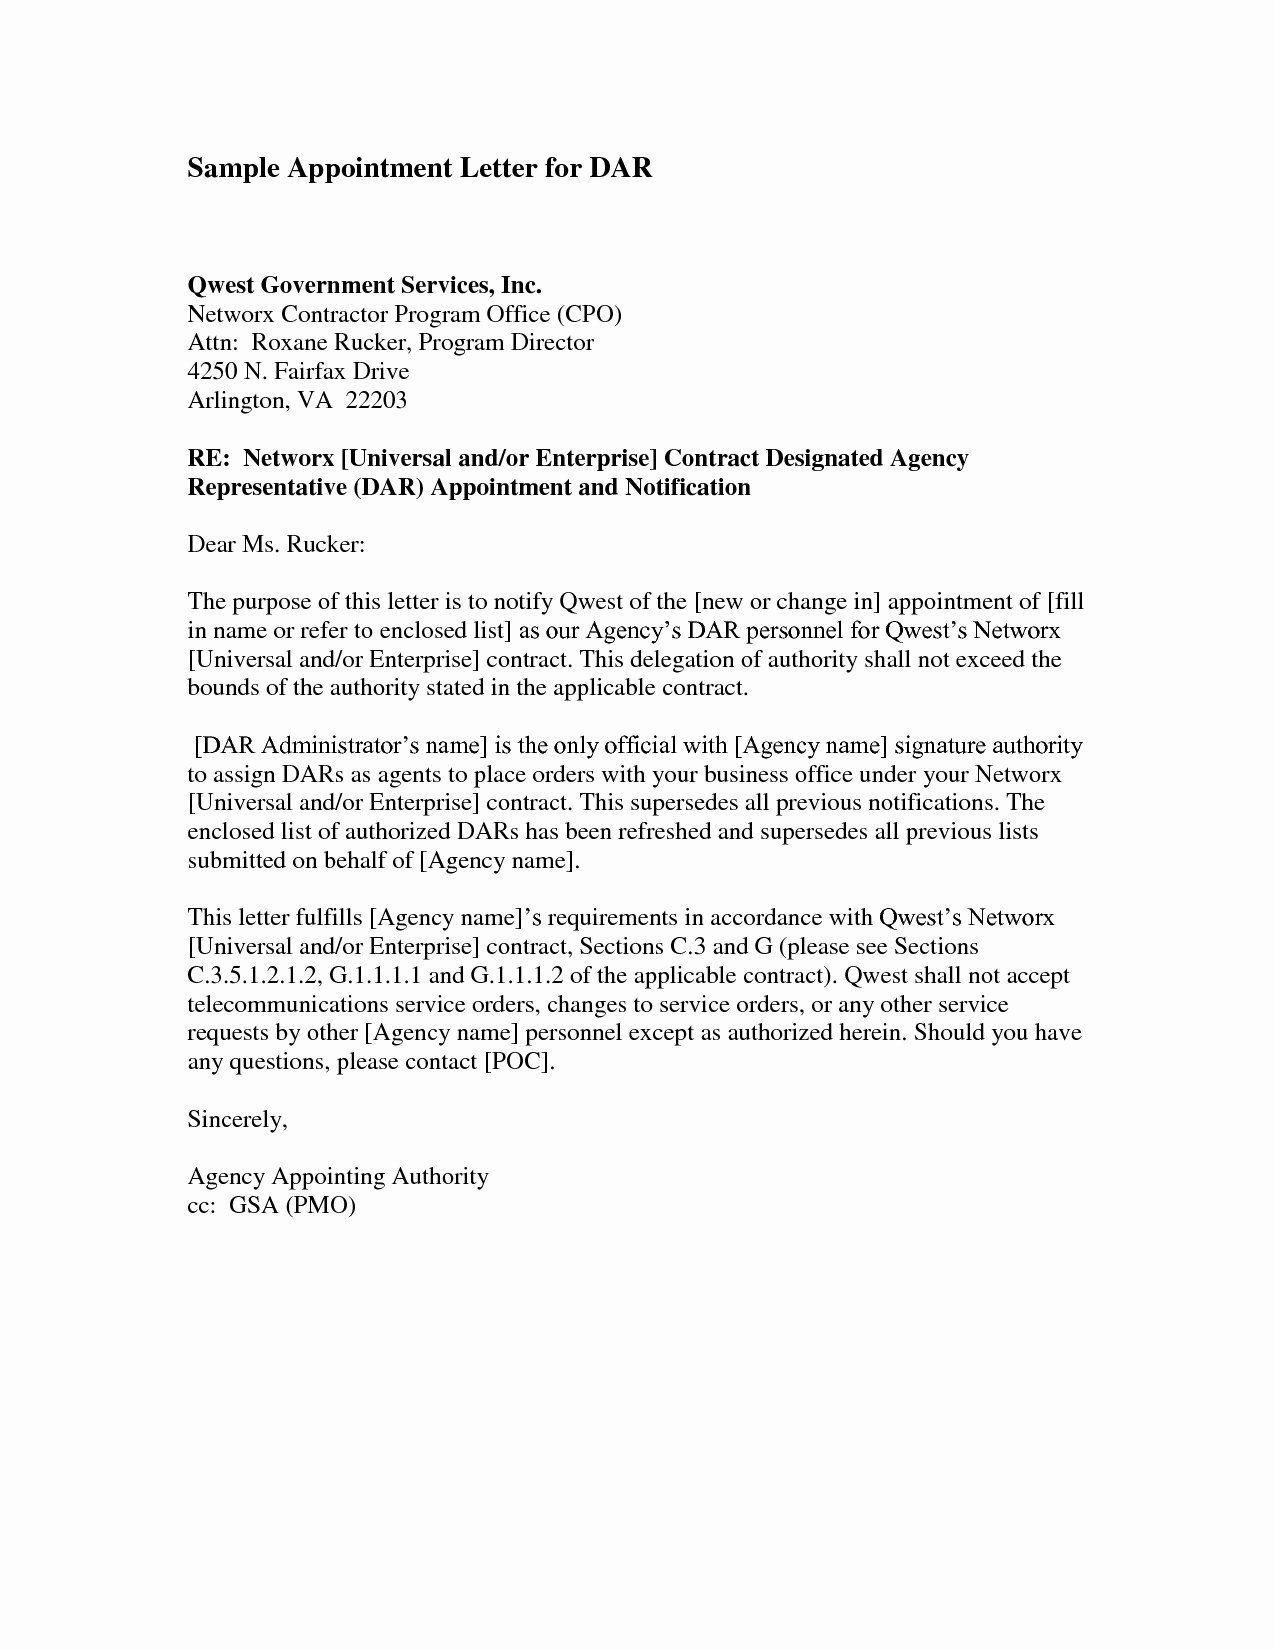 Sample Dental Letters to Patients Fresh Dental Patient Dismissal Letter Template Examples